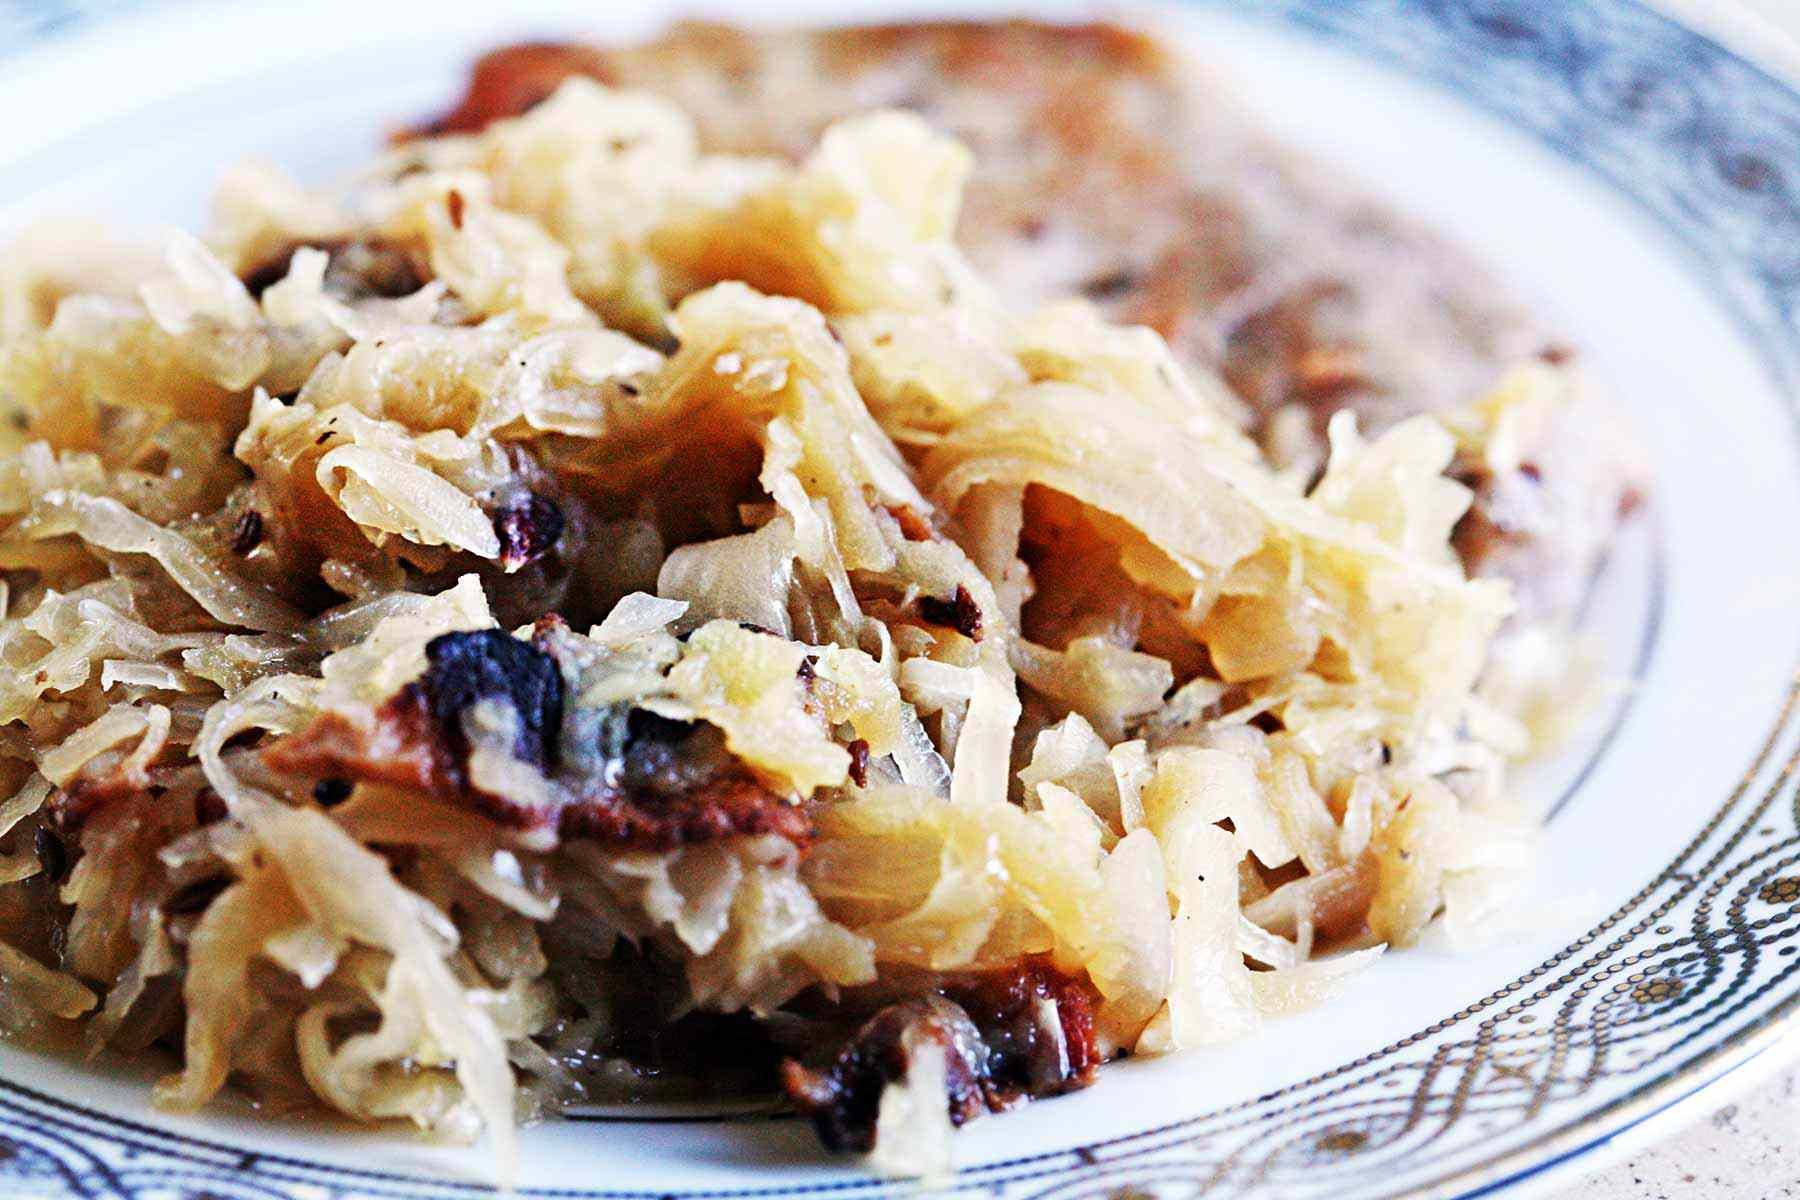 Sauerkraut with Bacon and Apples